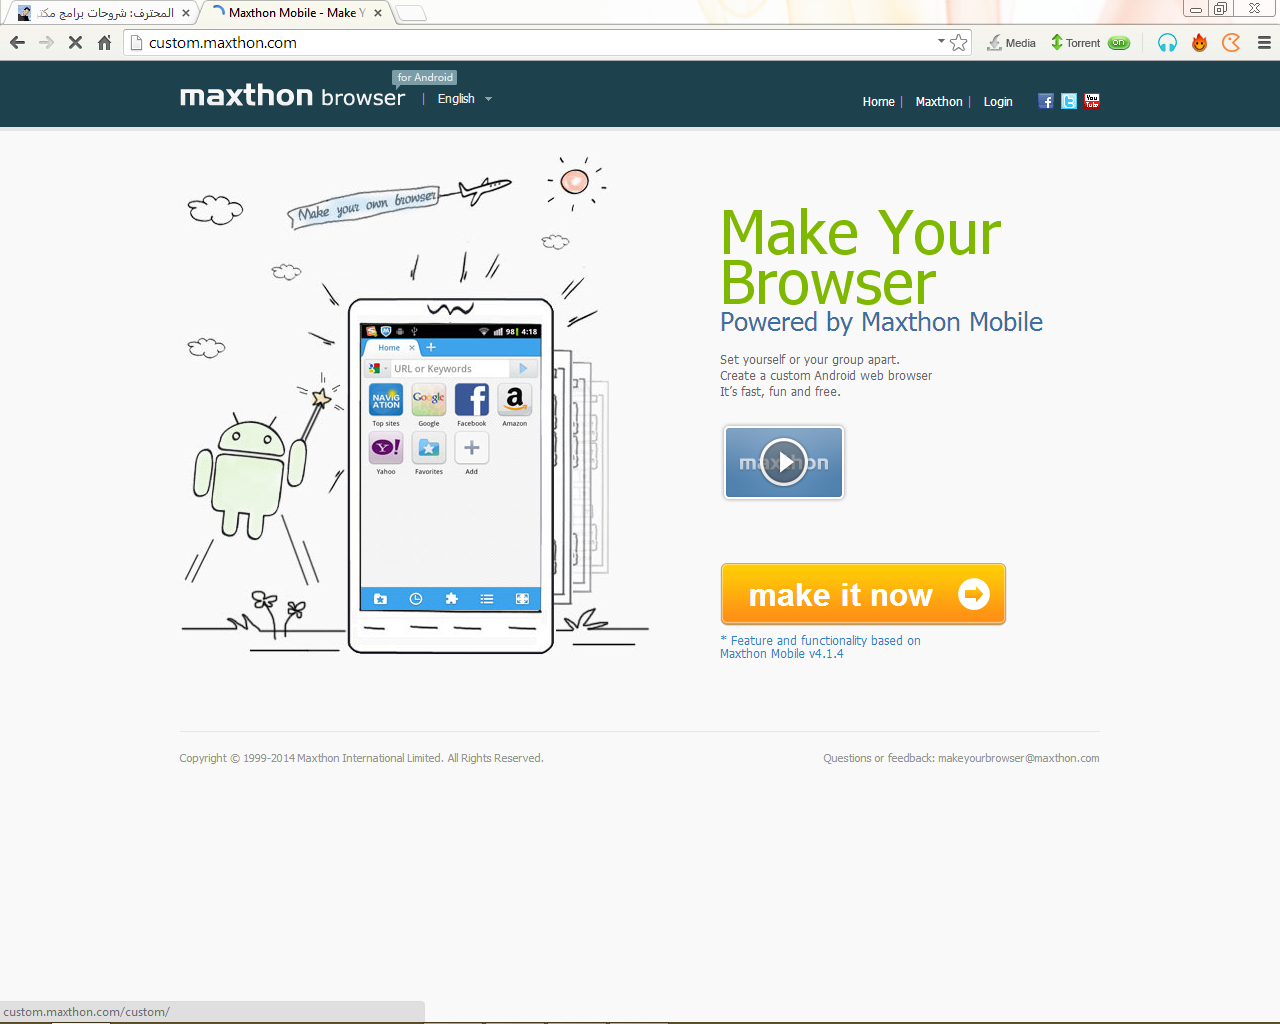 browser for android, android, masthon mmobile, make, open browser,